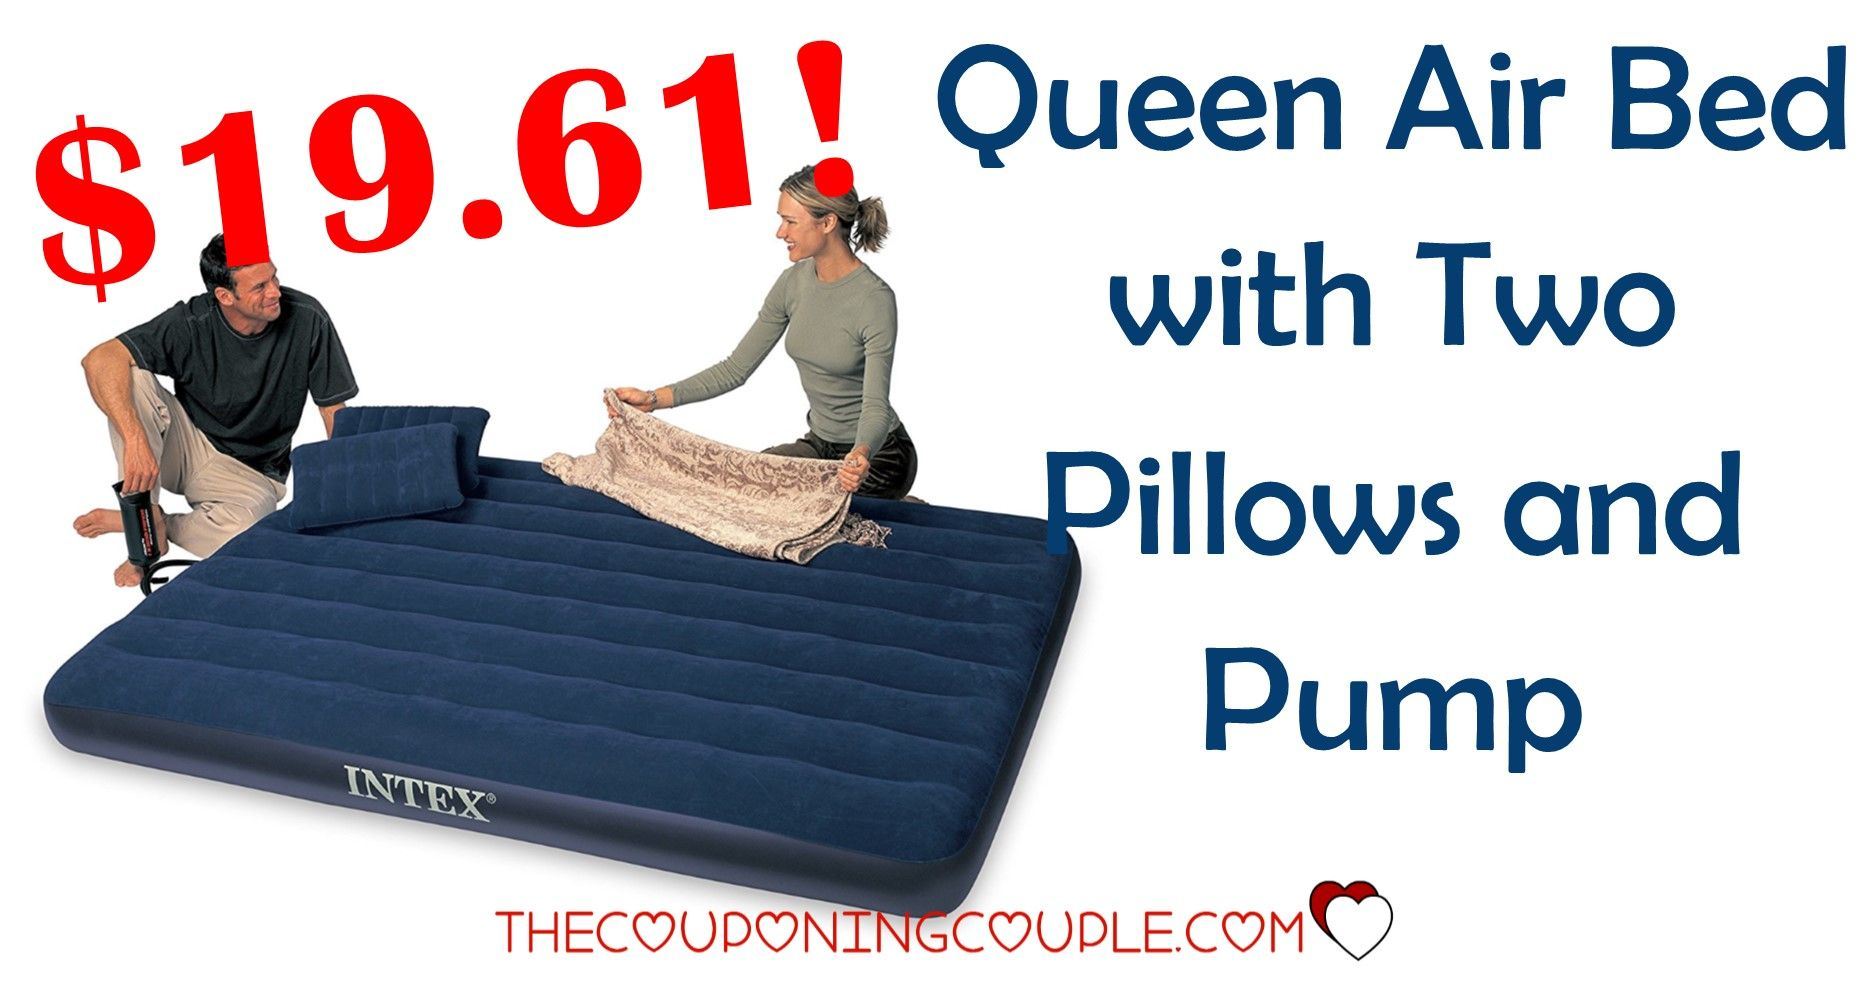 queen air bed set with 2 pillows and pump 19 61 coupon matchups